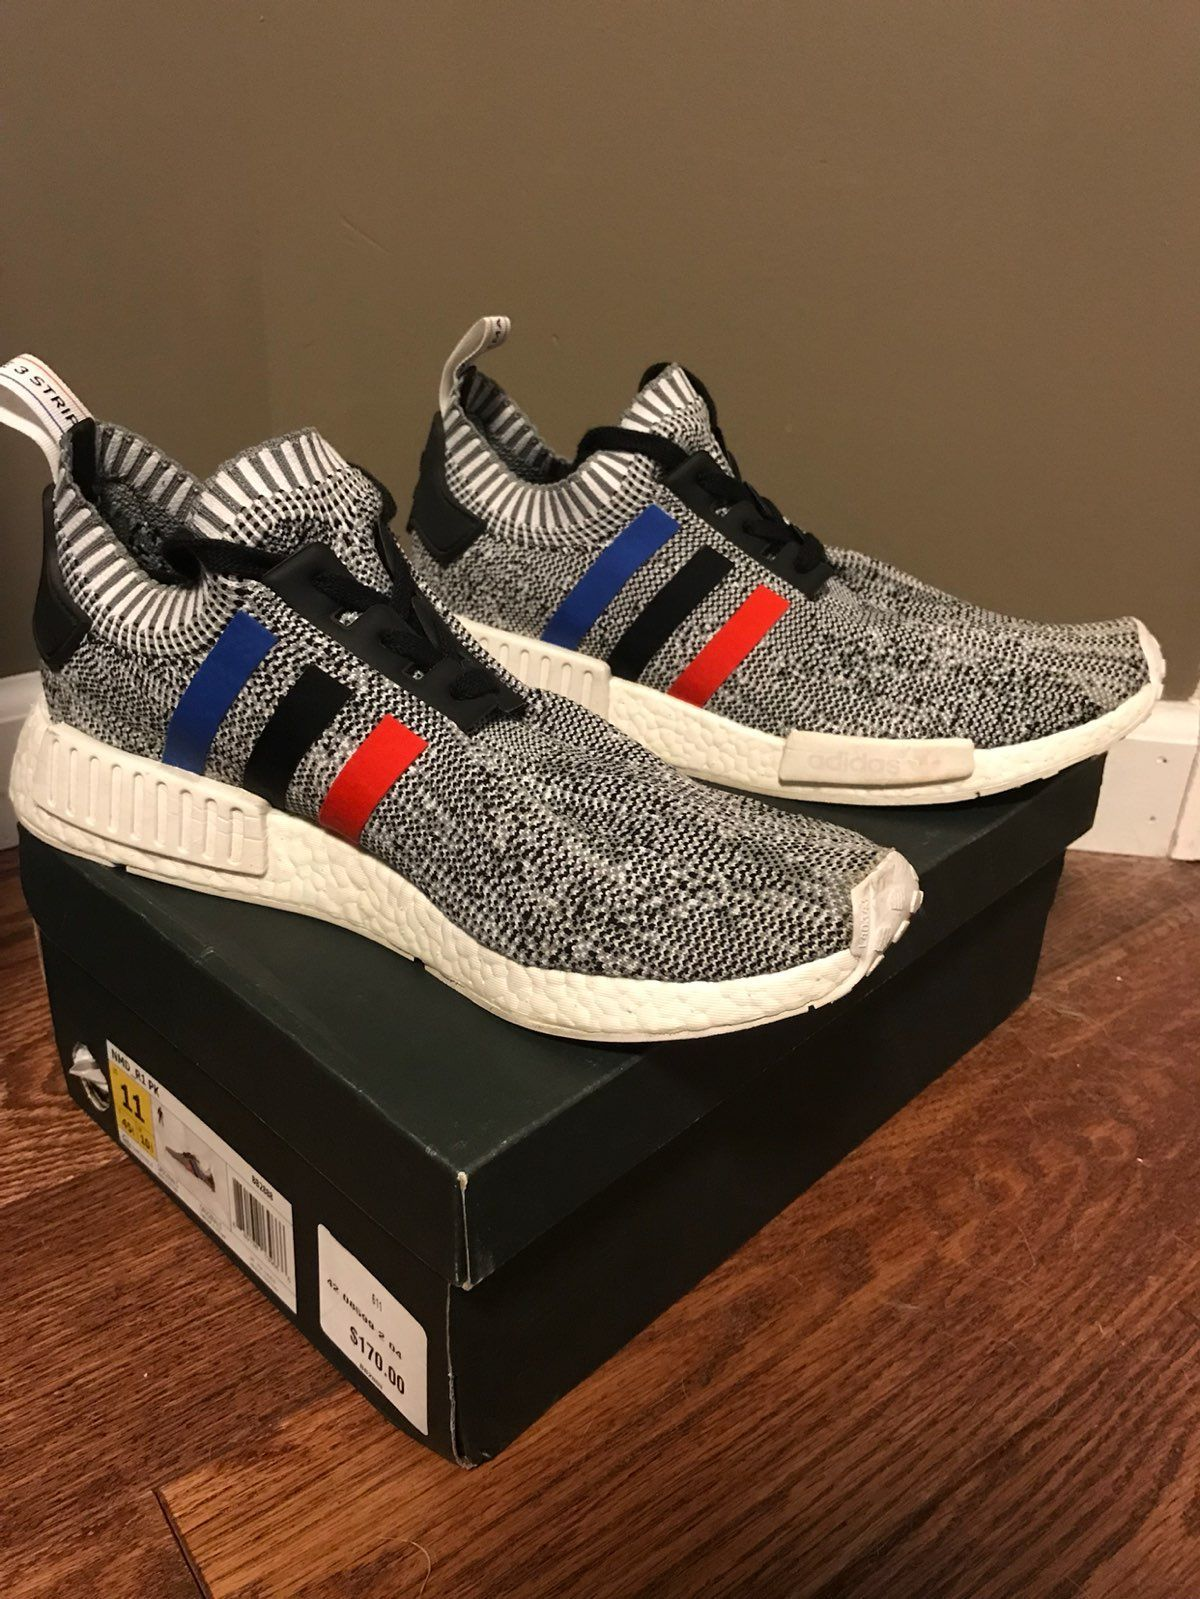 ecb7a6d6d4 Authentic Adidas Nmd R1 Jd Exclusive Shoes for sale in Batu Pahat